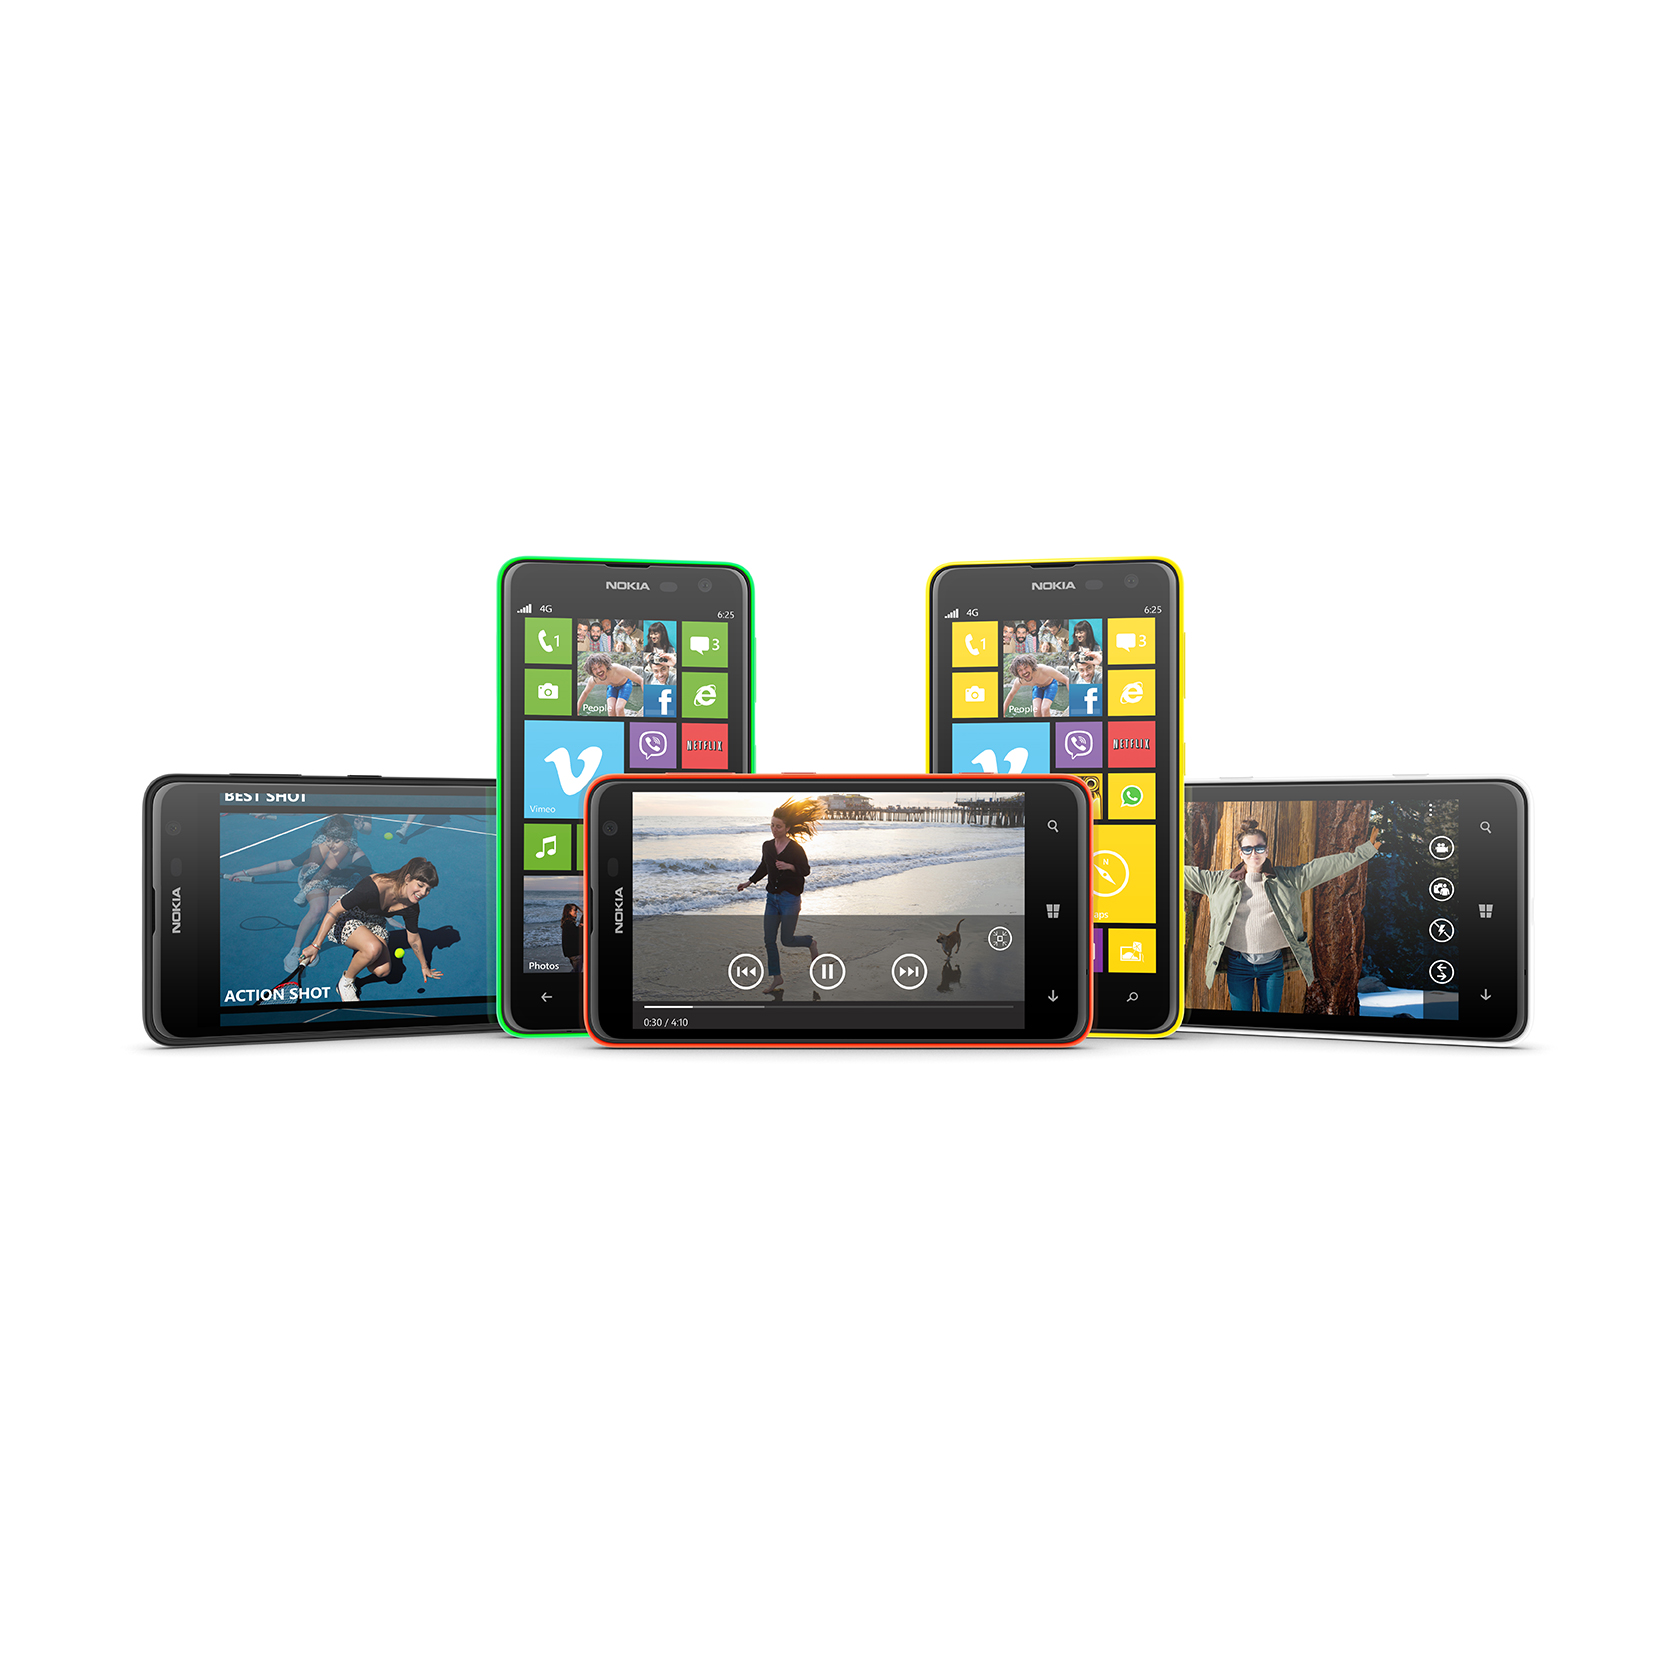 Powered by Windows Phone 8, the Nokia Lumia 625 offers faster mobile fun, as well as safer surfing with Internet Explorer 10 – making it ideal for viewing videos, games and other content.